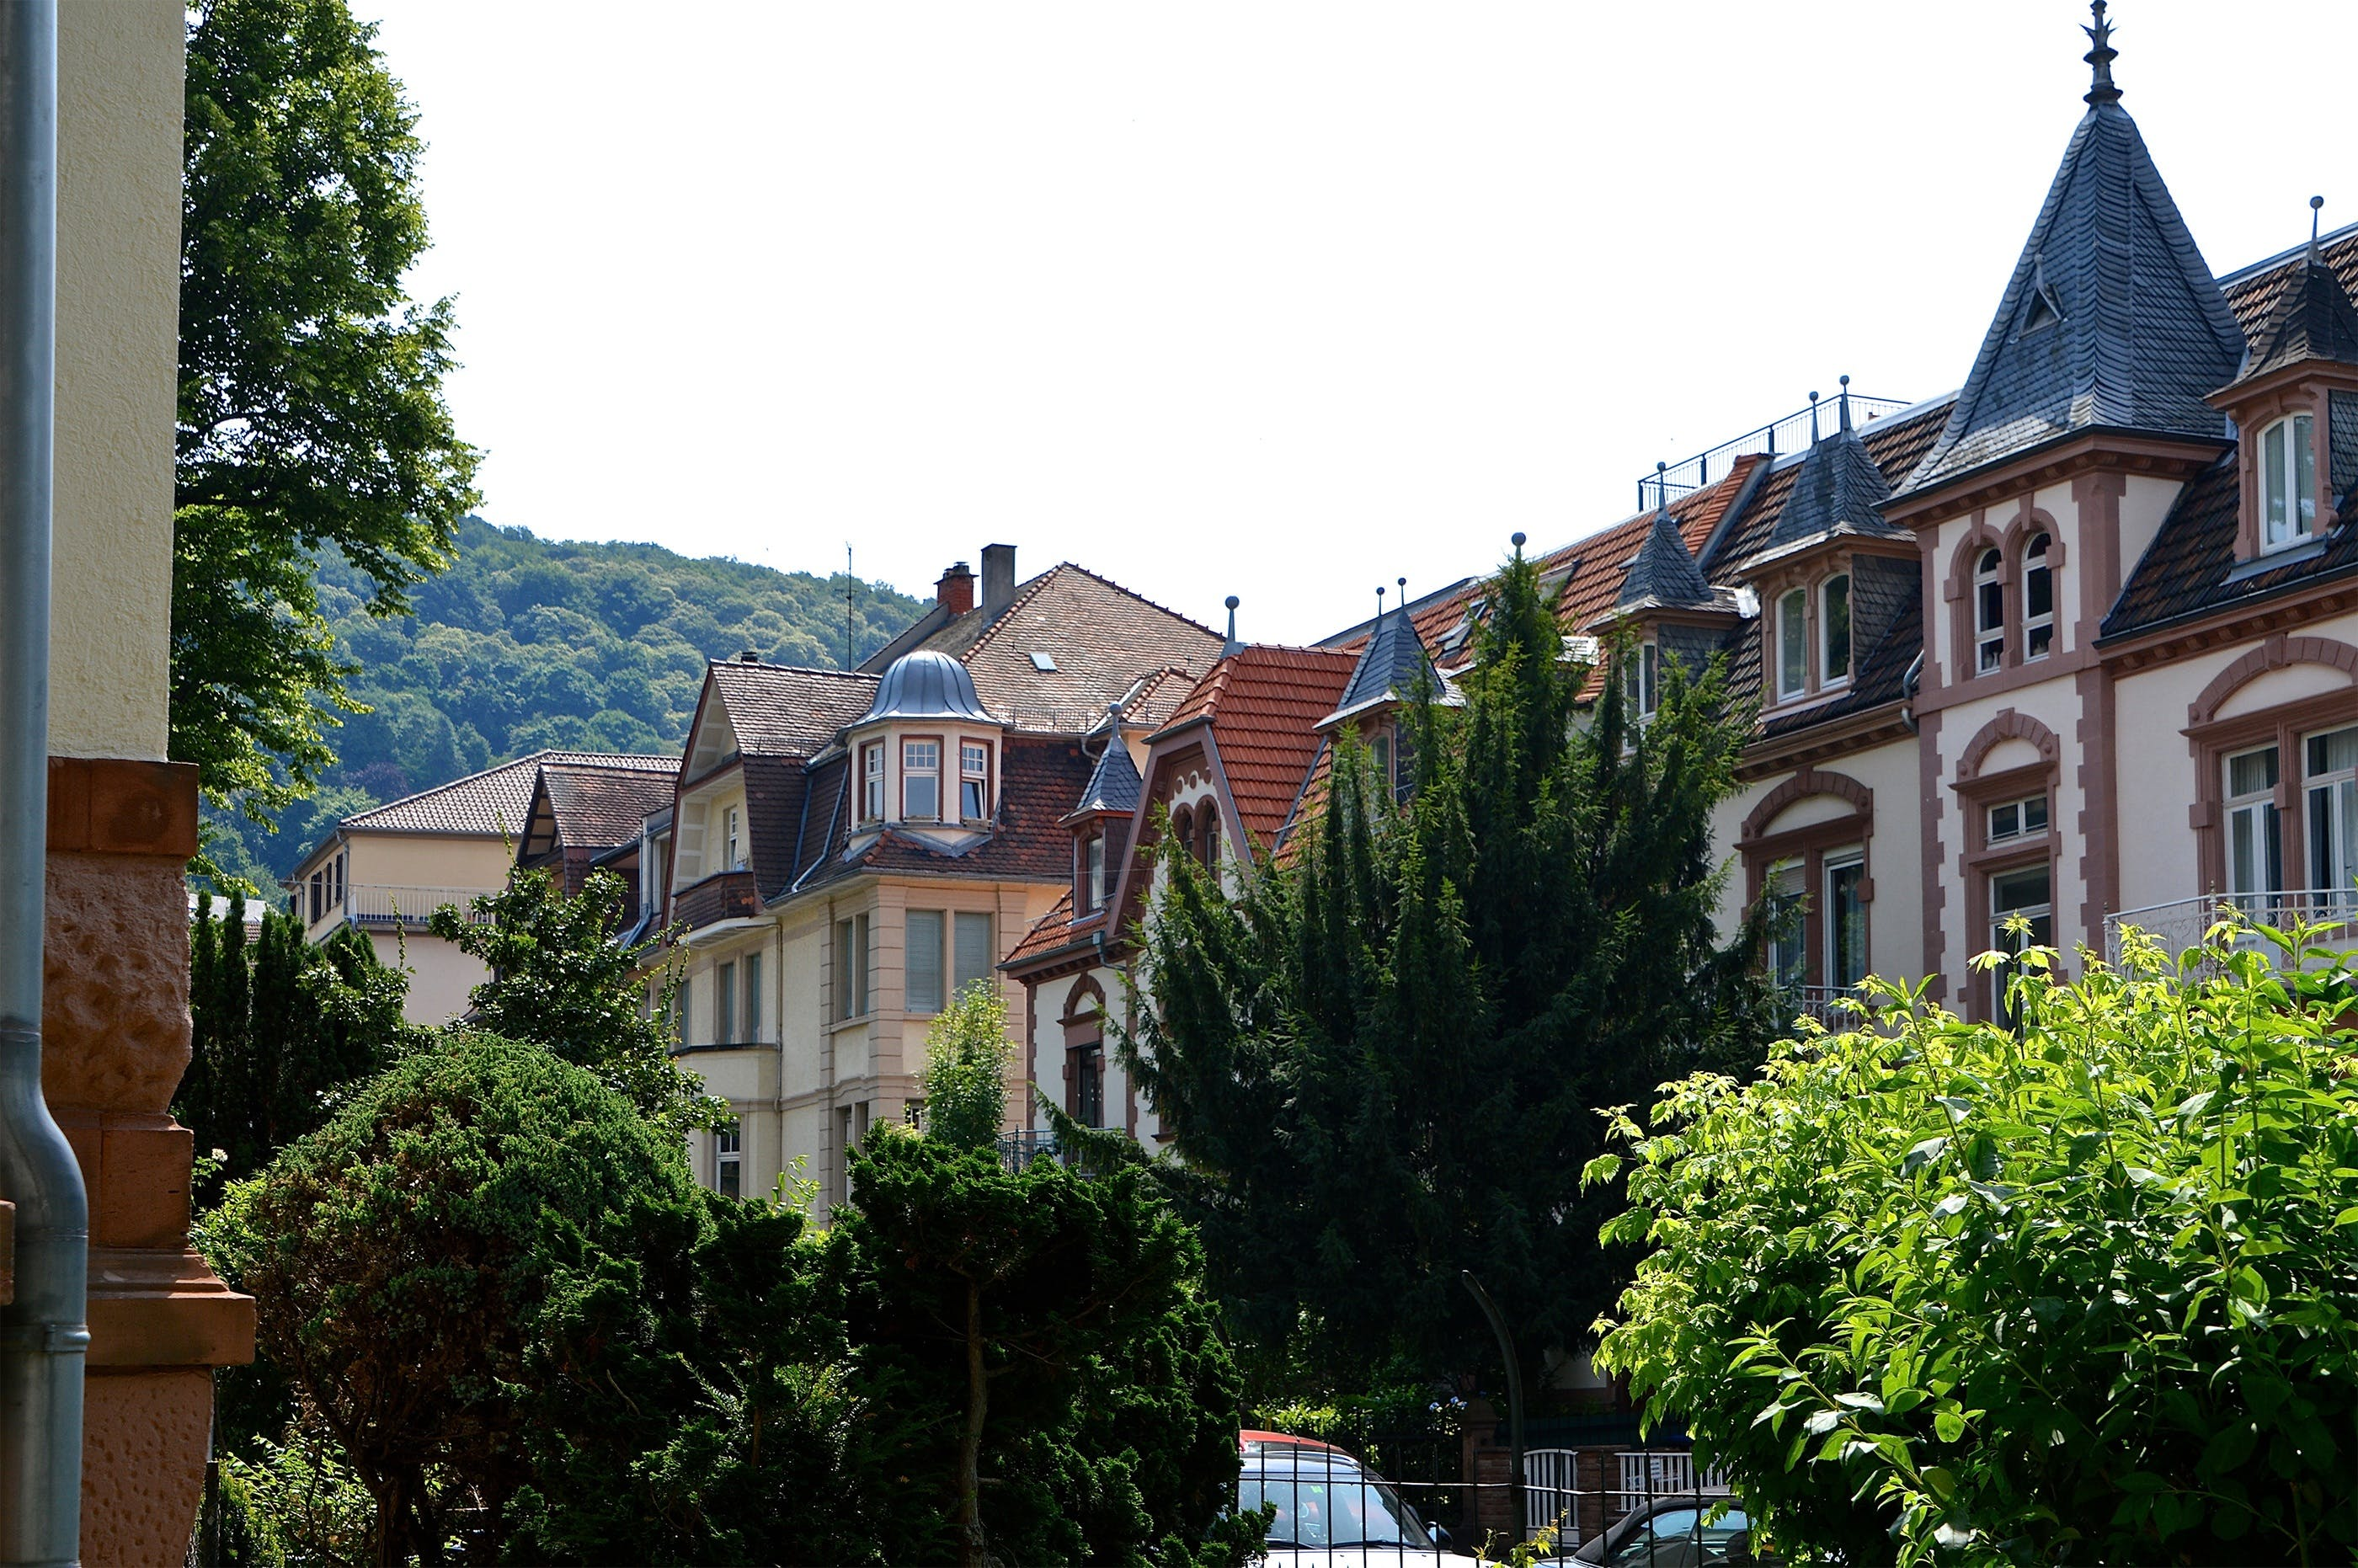 Panoramic Photo of Houses